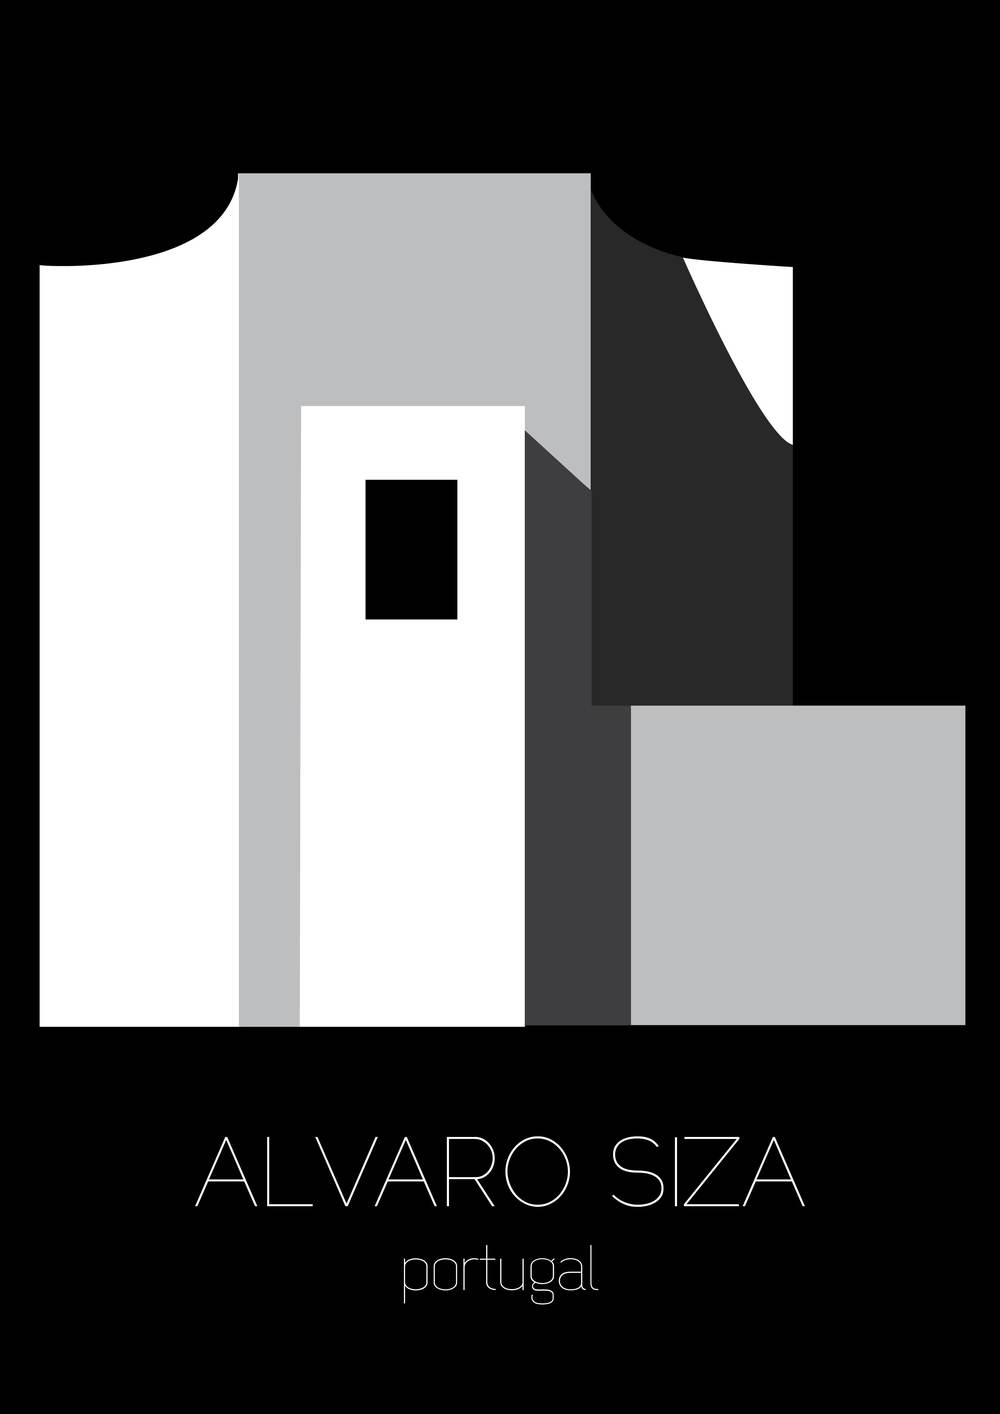 Poster d'architecture, Alvaro SIza - www.marionchibrard.com   please do not remove images credits